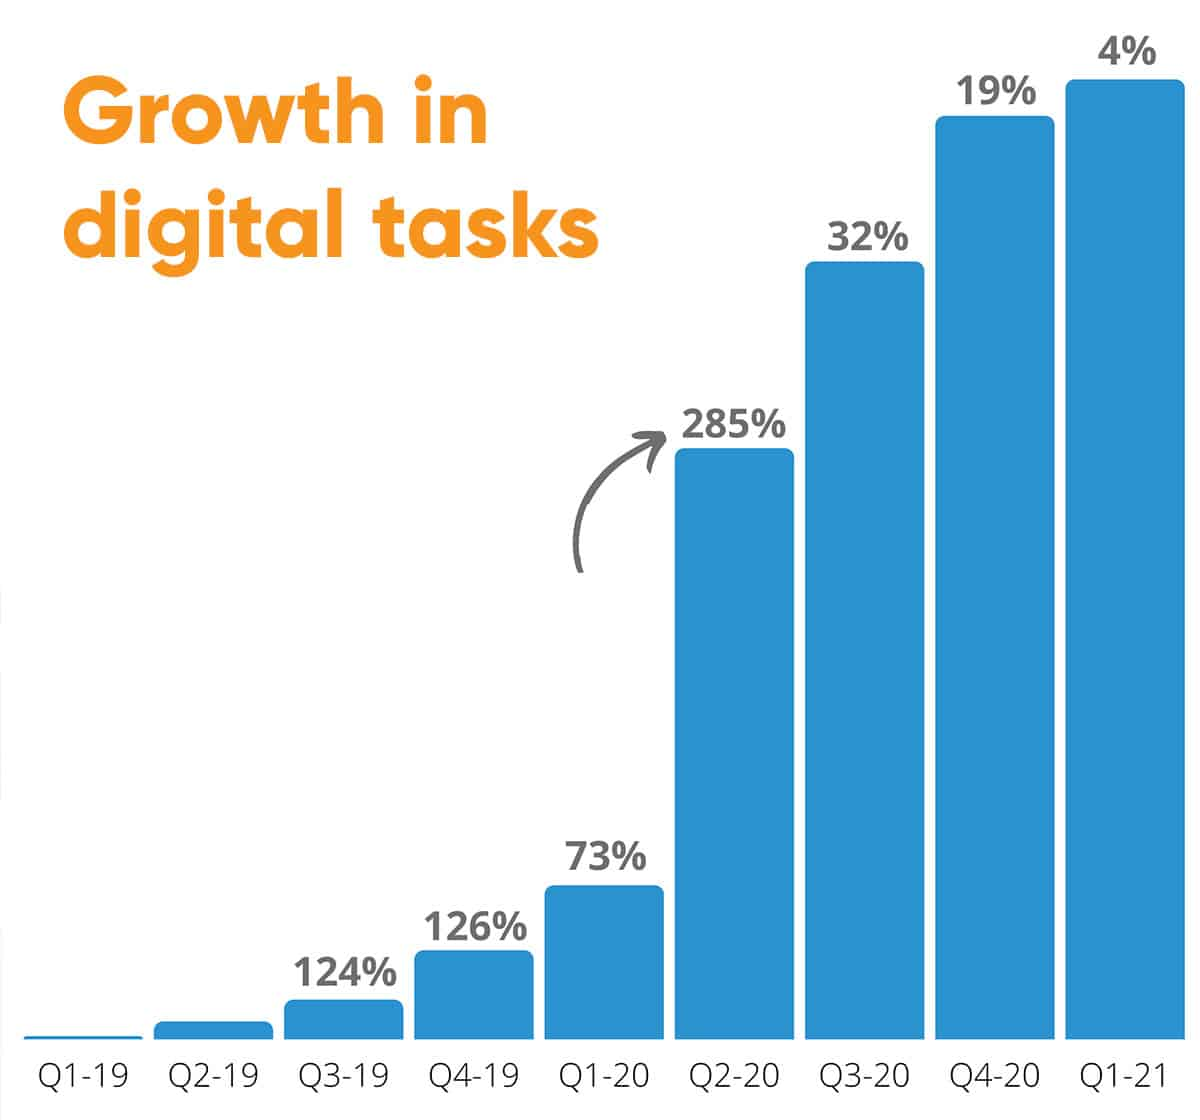 Unique IQ's research found high growth in digital task usage amongst home carers during the pandemic